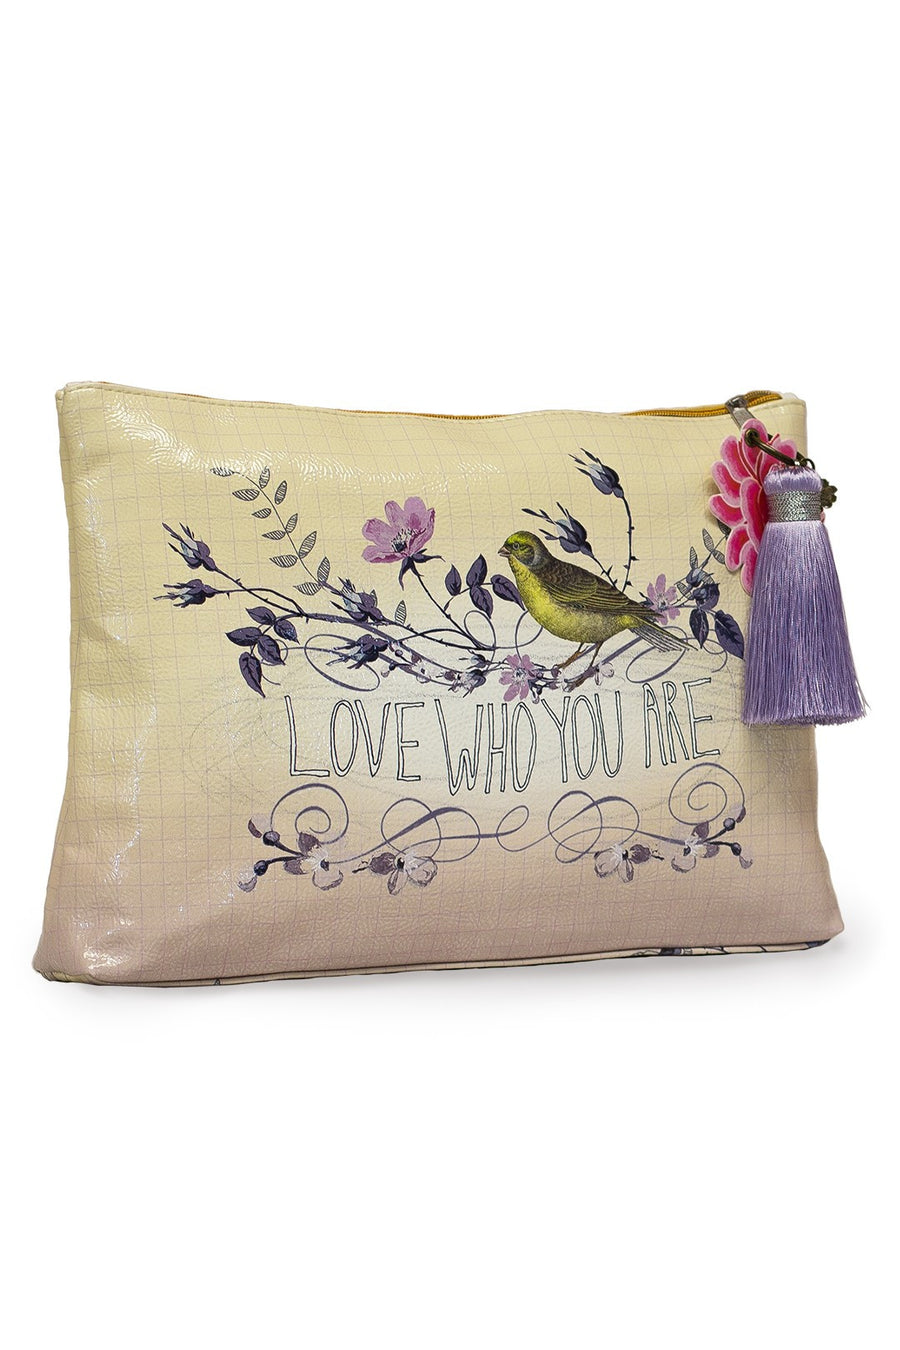 Papaya Art Love Who You Are Bird Bohemian Accessory Bag with Key Chain